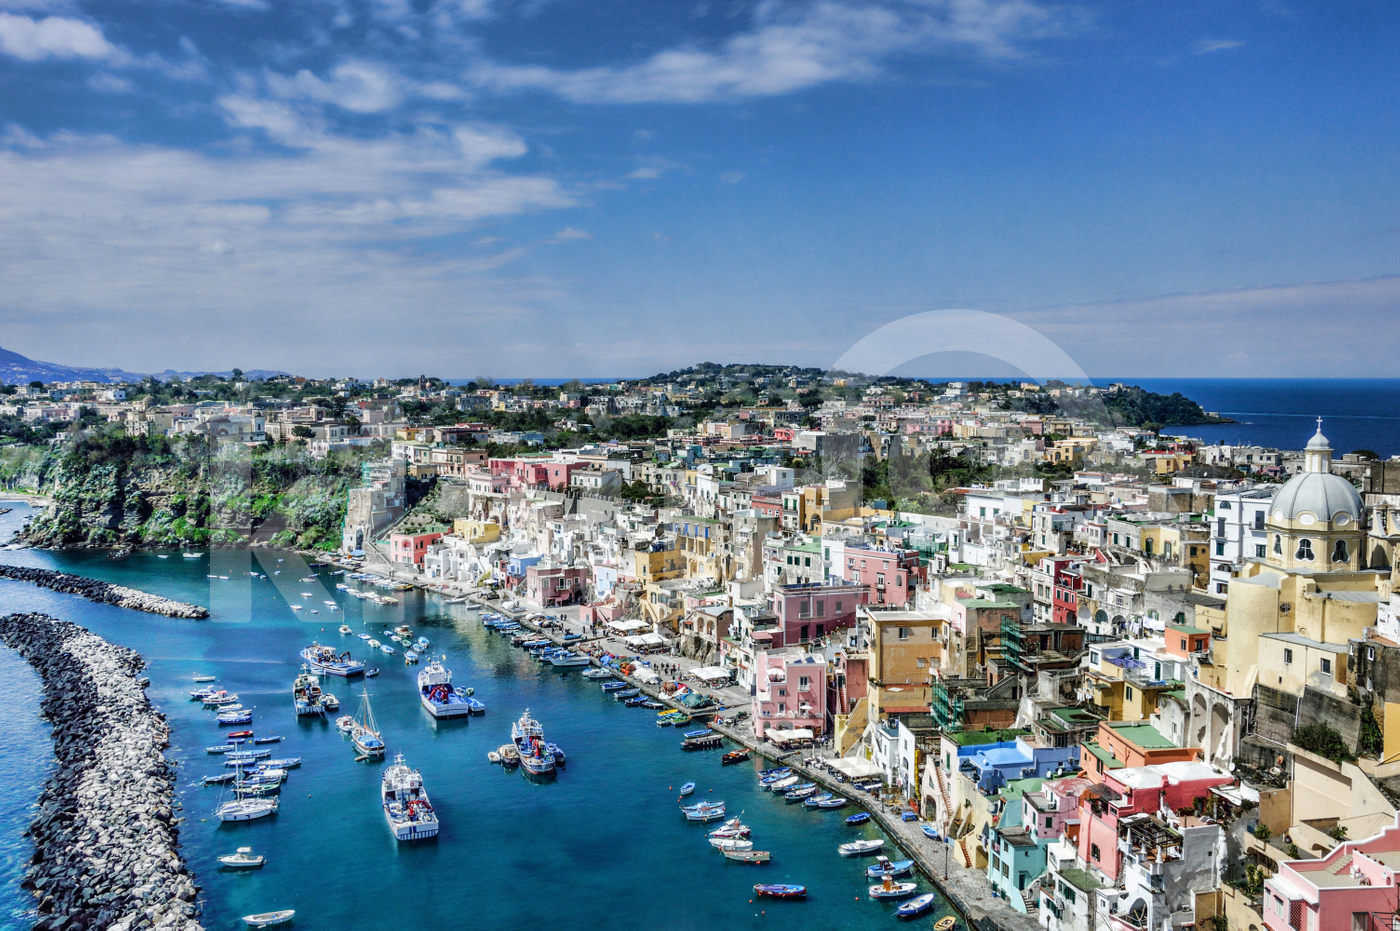 The beauty of Procida Island